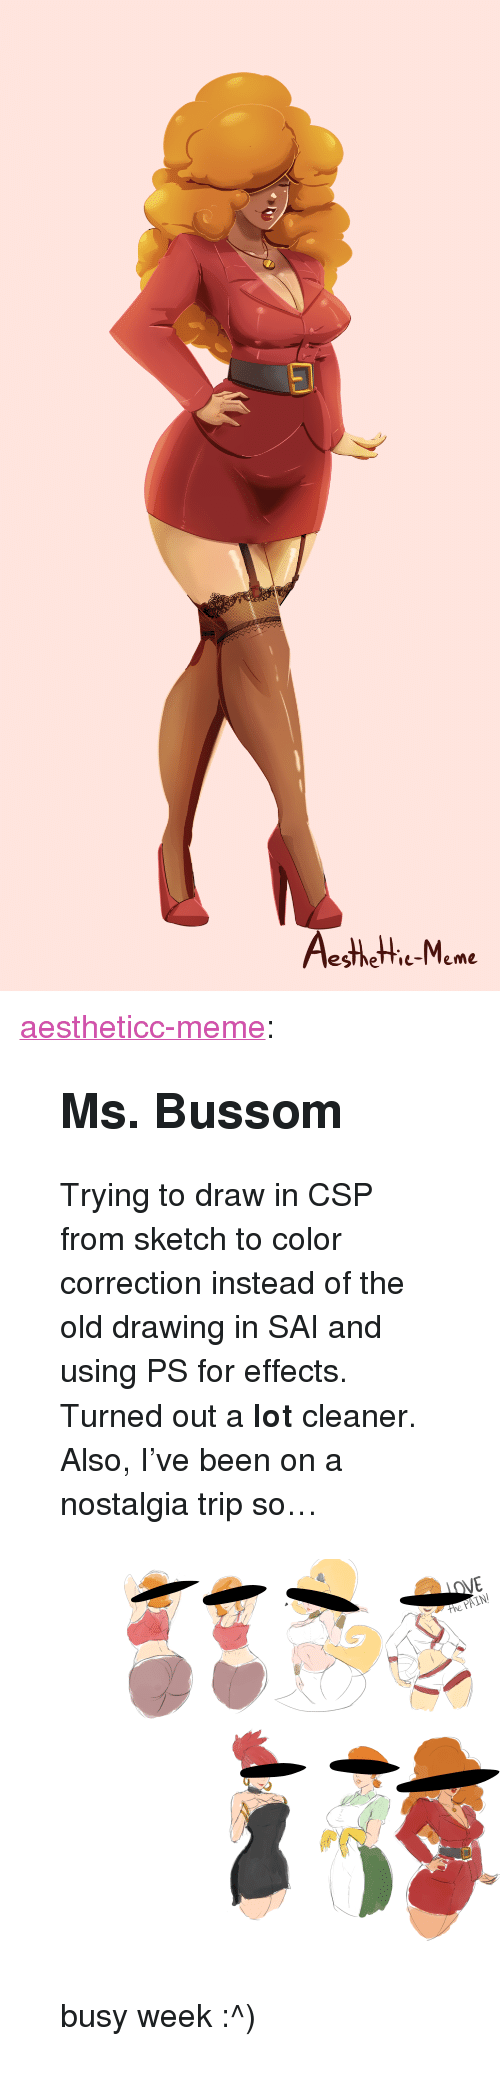 "Correction: esthetie-Meme <p><a href=""https://aestheticc-meme.tumblr.com/post/172005564959/ms-bussom-trying-to-draw-in-csp-from-sketch-to"" class=""tumblr_blog"" target=""_blank"">aestheticc-meme</a>:</p>  <blockquote><h2><b>Ms. Bussom</b></h2><p>Trying to draw in CSP from sketch to color correction instead of the old drawing in SAI and using PS for effects. Turned out a <b>lot</b> cleaner.</p><p>Also, I've been on a nostalgia trip so…</p><figure class=""tmblr-full"" data-orig-height=""7313"" data-orig-width=""10073""><img src=""https://78.media.tumblr.com/280b587b6197f92252b7e23116986d17/tumblr_inline_p5svm2oTcJ1sdoznj_540.png"" data-orig-height=""7313"" data-orig-width=""10073""/></figure><p>busy week :^)</p></blockquote>"